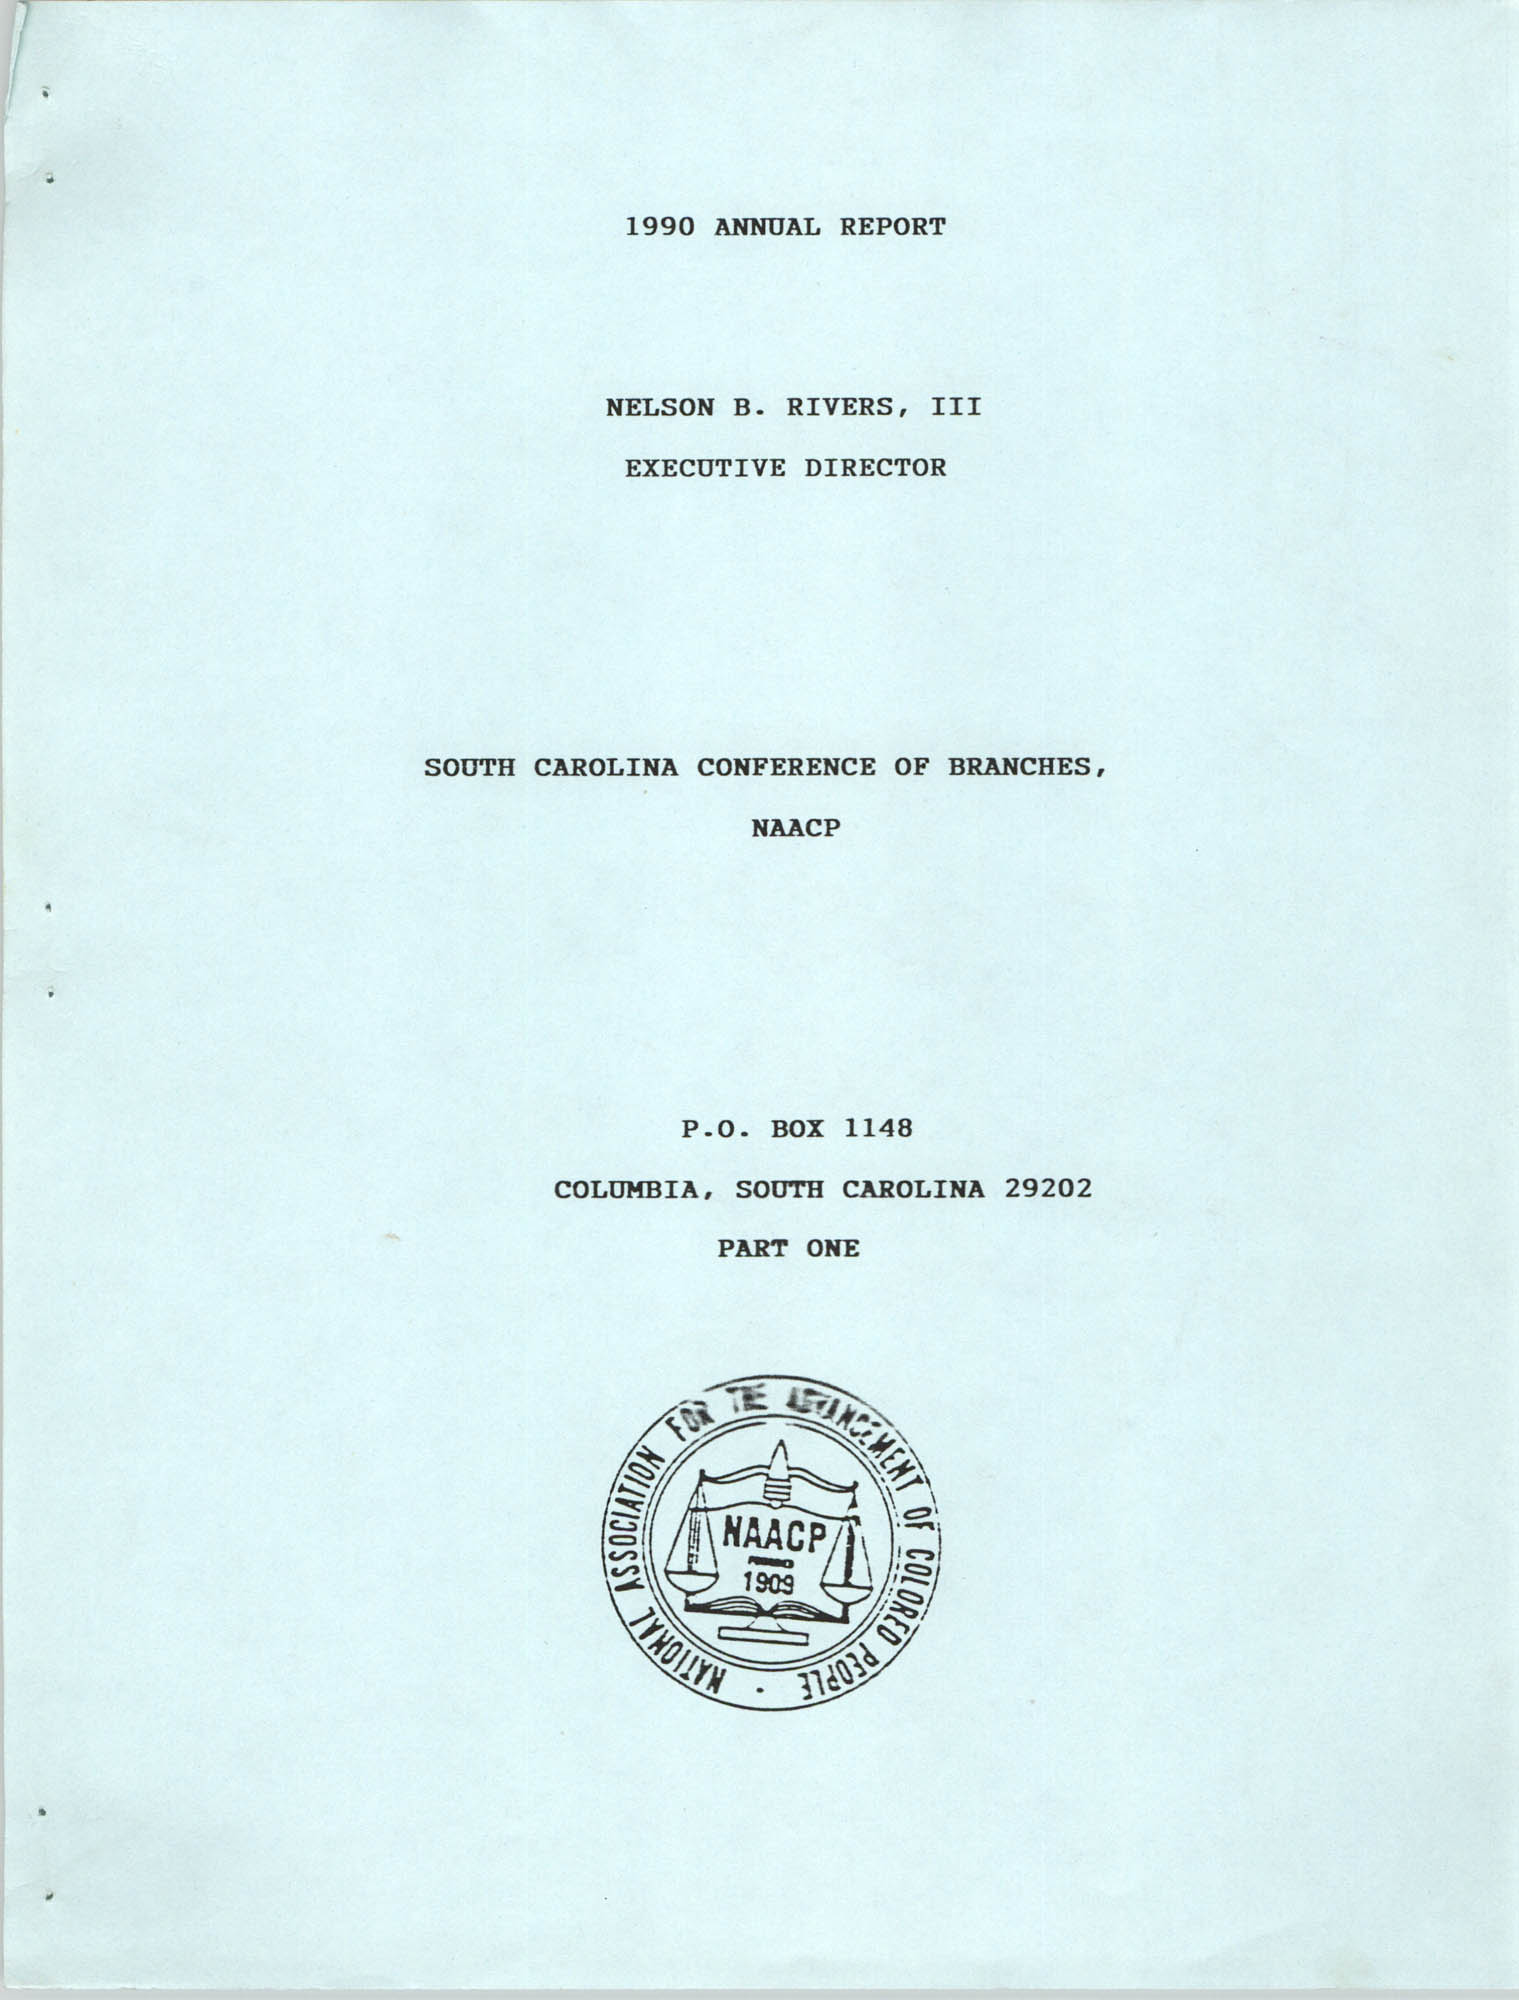 South Carolina Conference of Branches of the NAACP, 1990 Annual Report, Part One, Front Cover